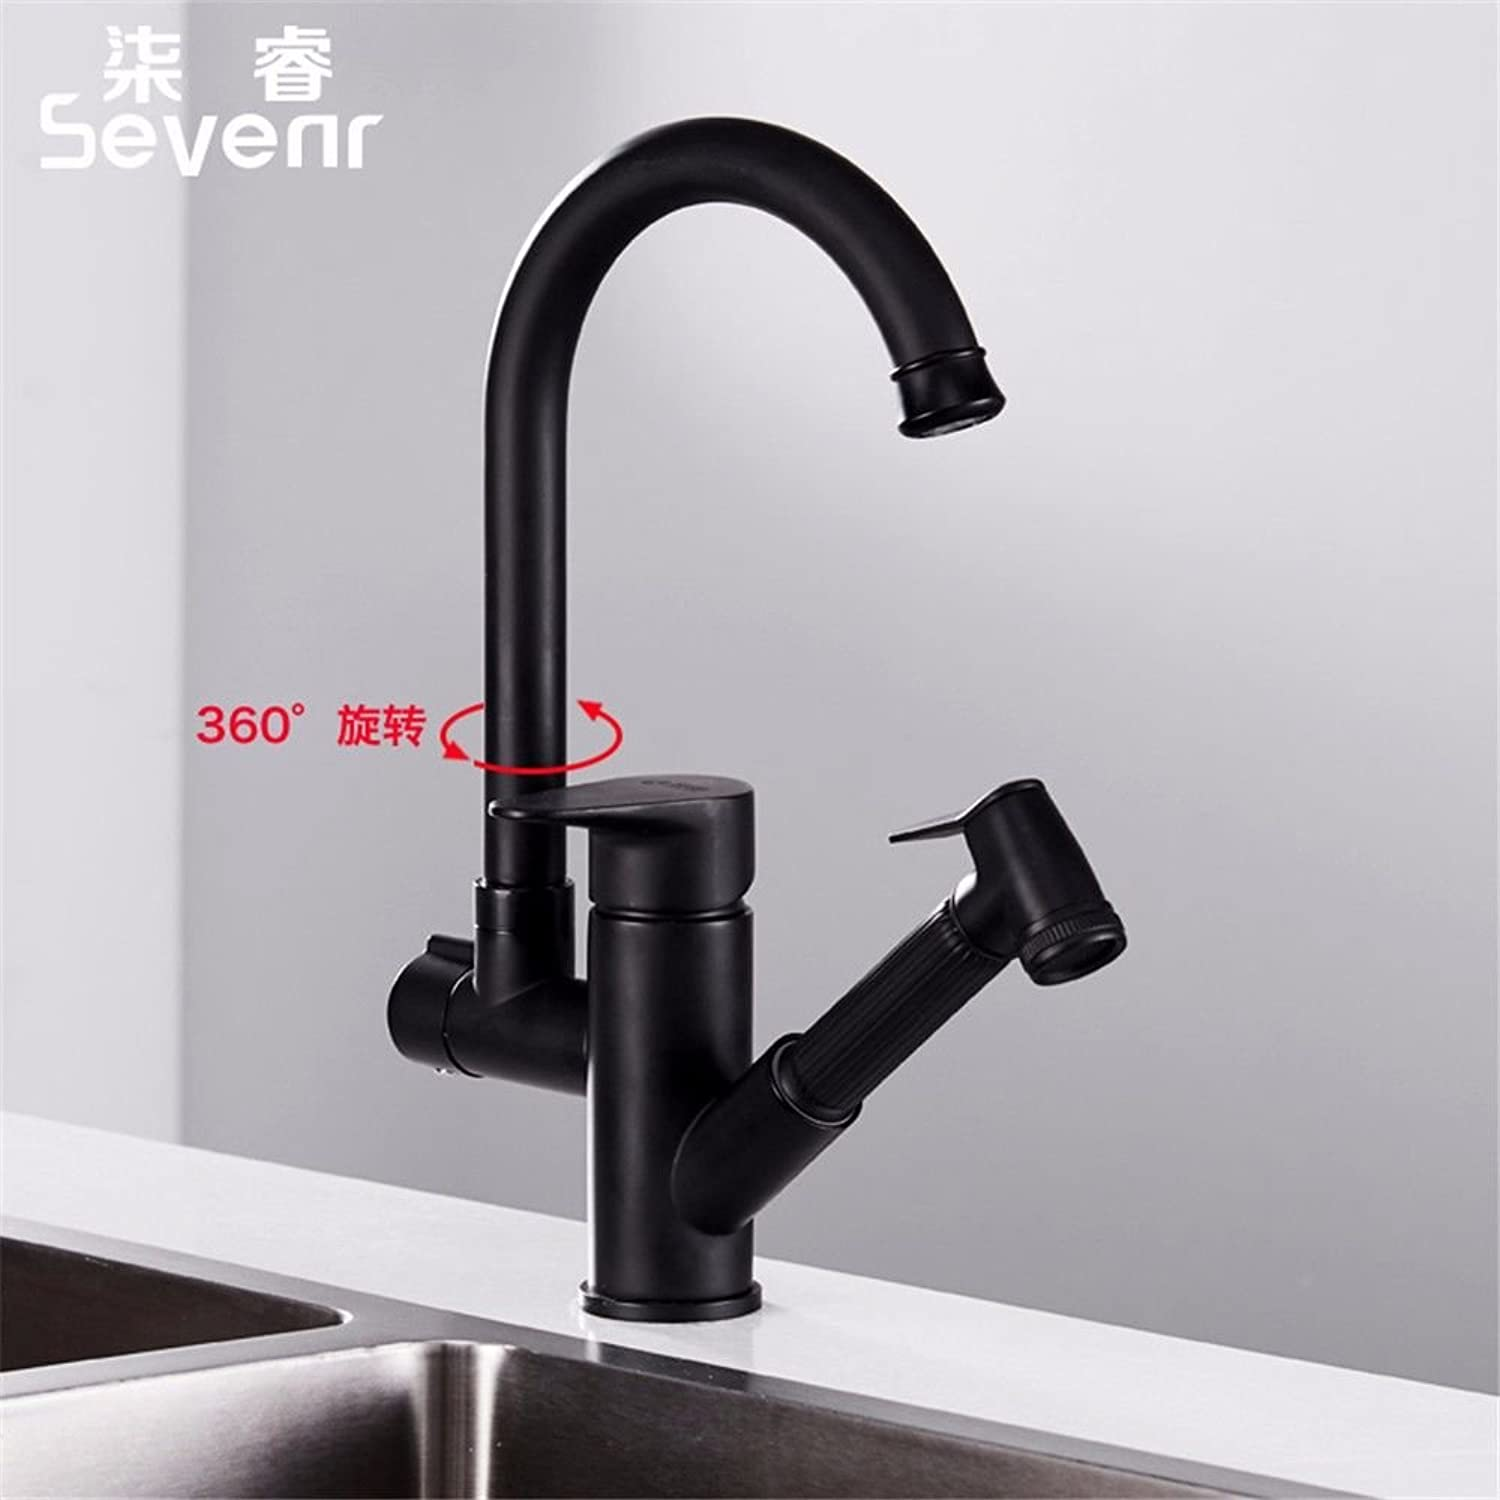 Bijjaladeva Antique Kitchen Sink Mixer Tap Kitchen Faucet hot and Cold wash The Fish pots of The Spill-Resistant 304 Stainless Steel Household Water taps Turn Black